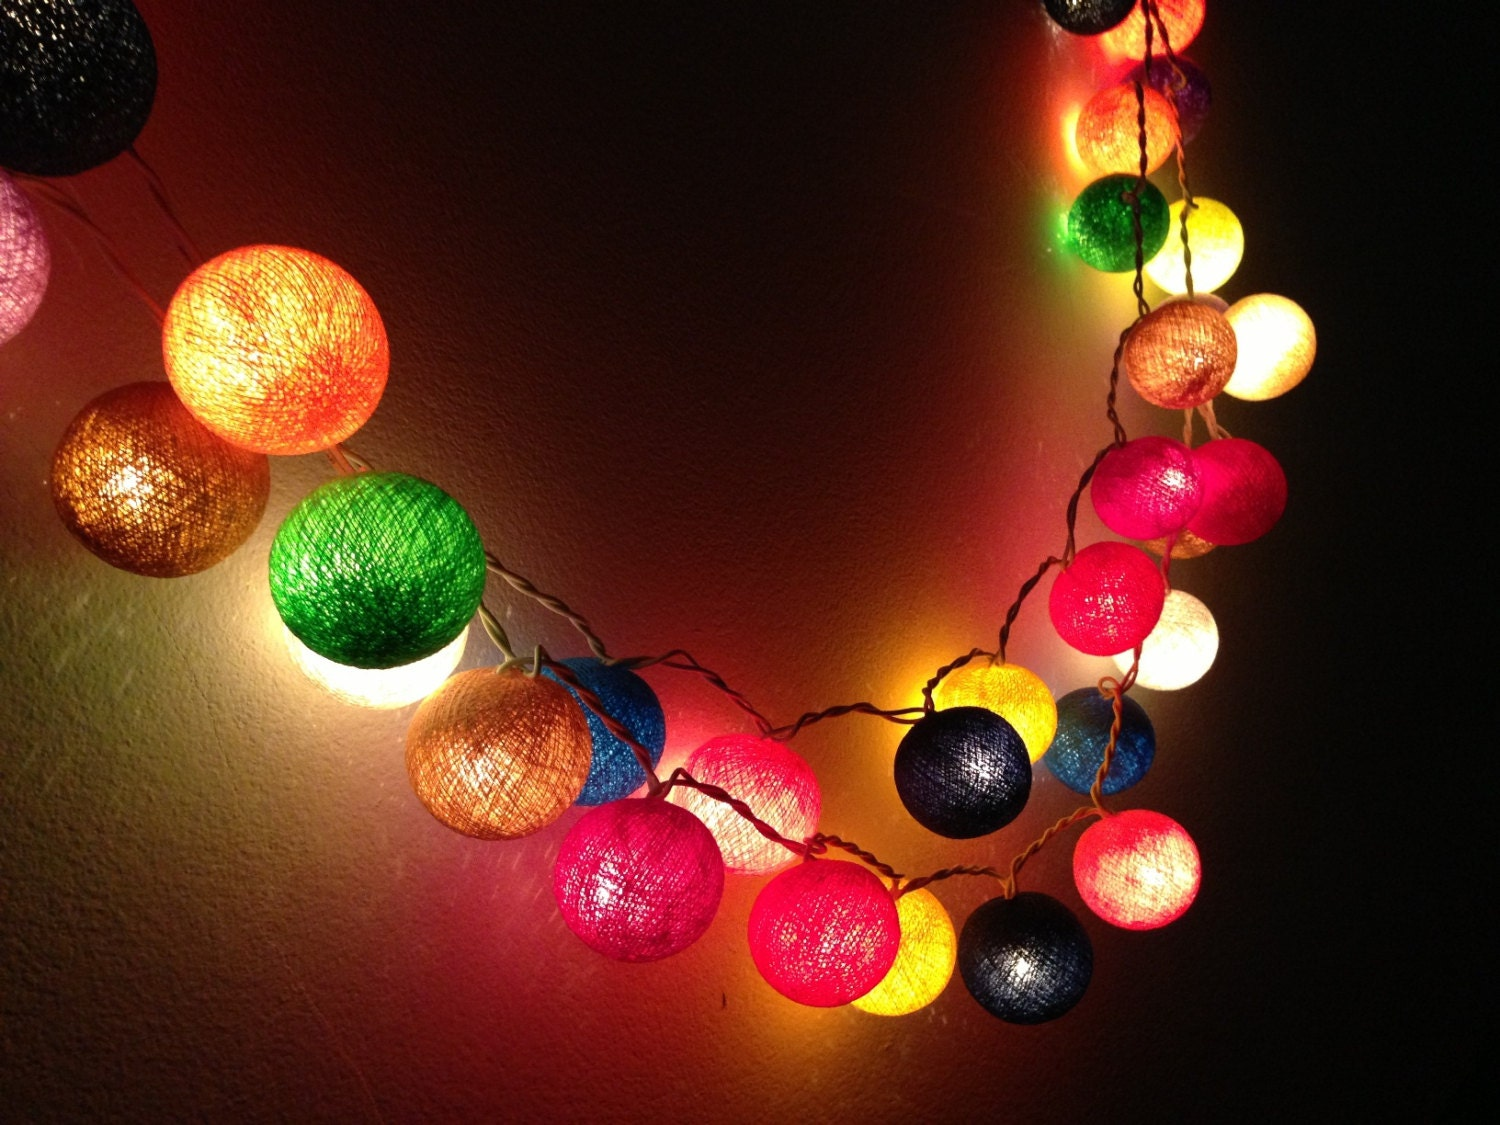 20 bulbs carnival night light cotton ball string lights for. Black Bedroom Furniture Sets. Home Design Ideas